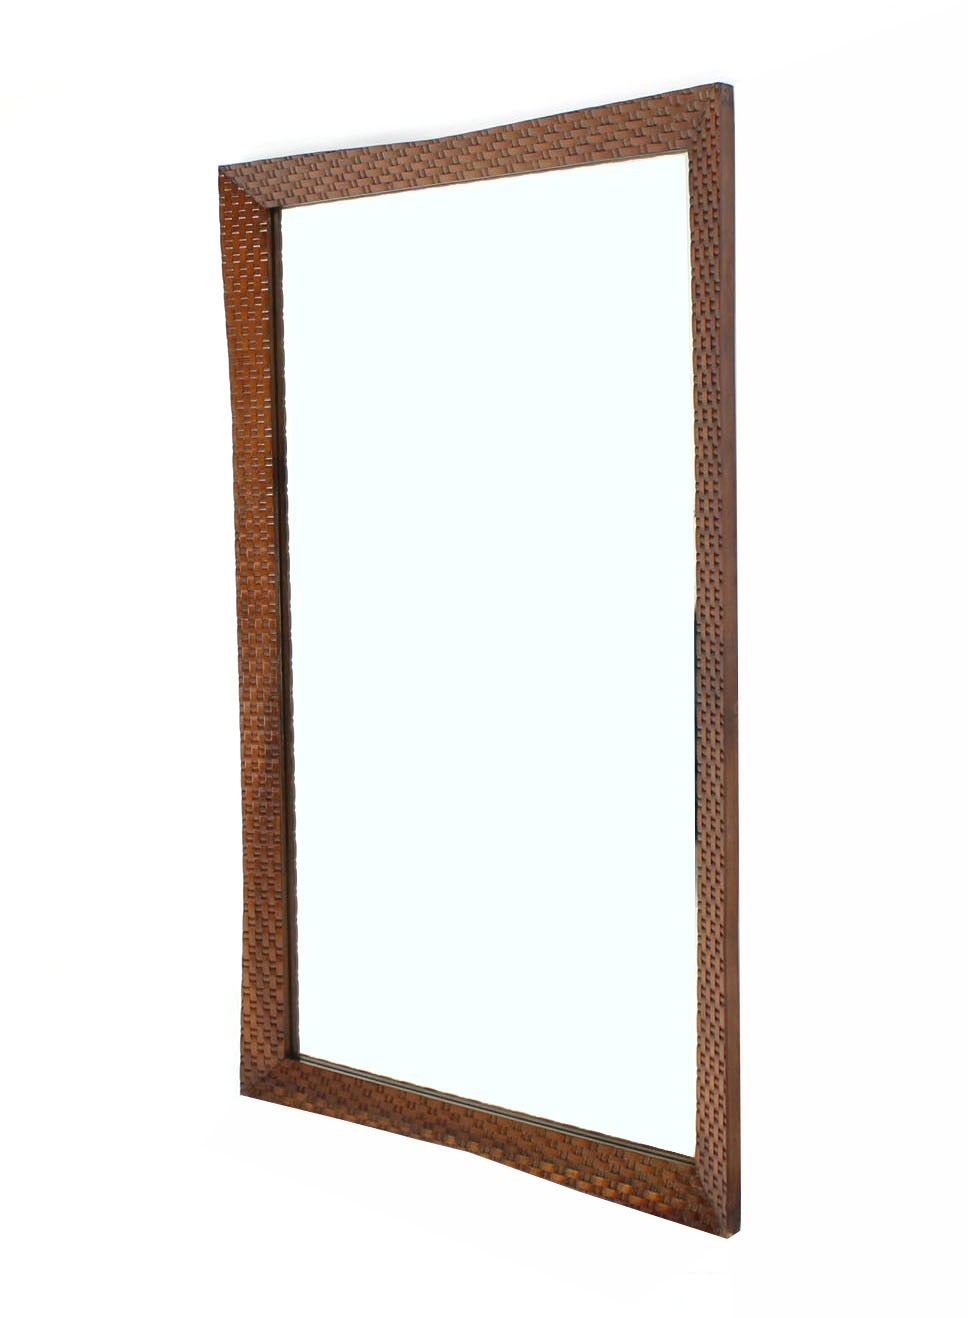 Carved wood carved lattice pattern large wall mirror for Large wooden mirrors for sale